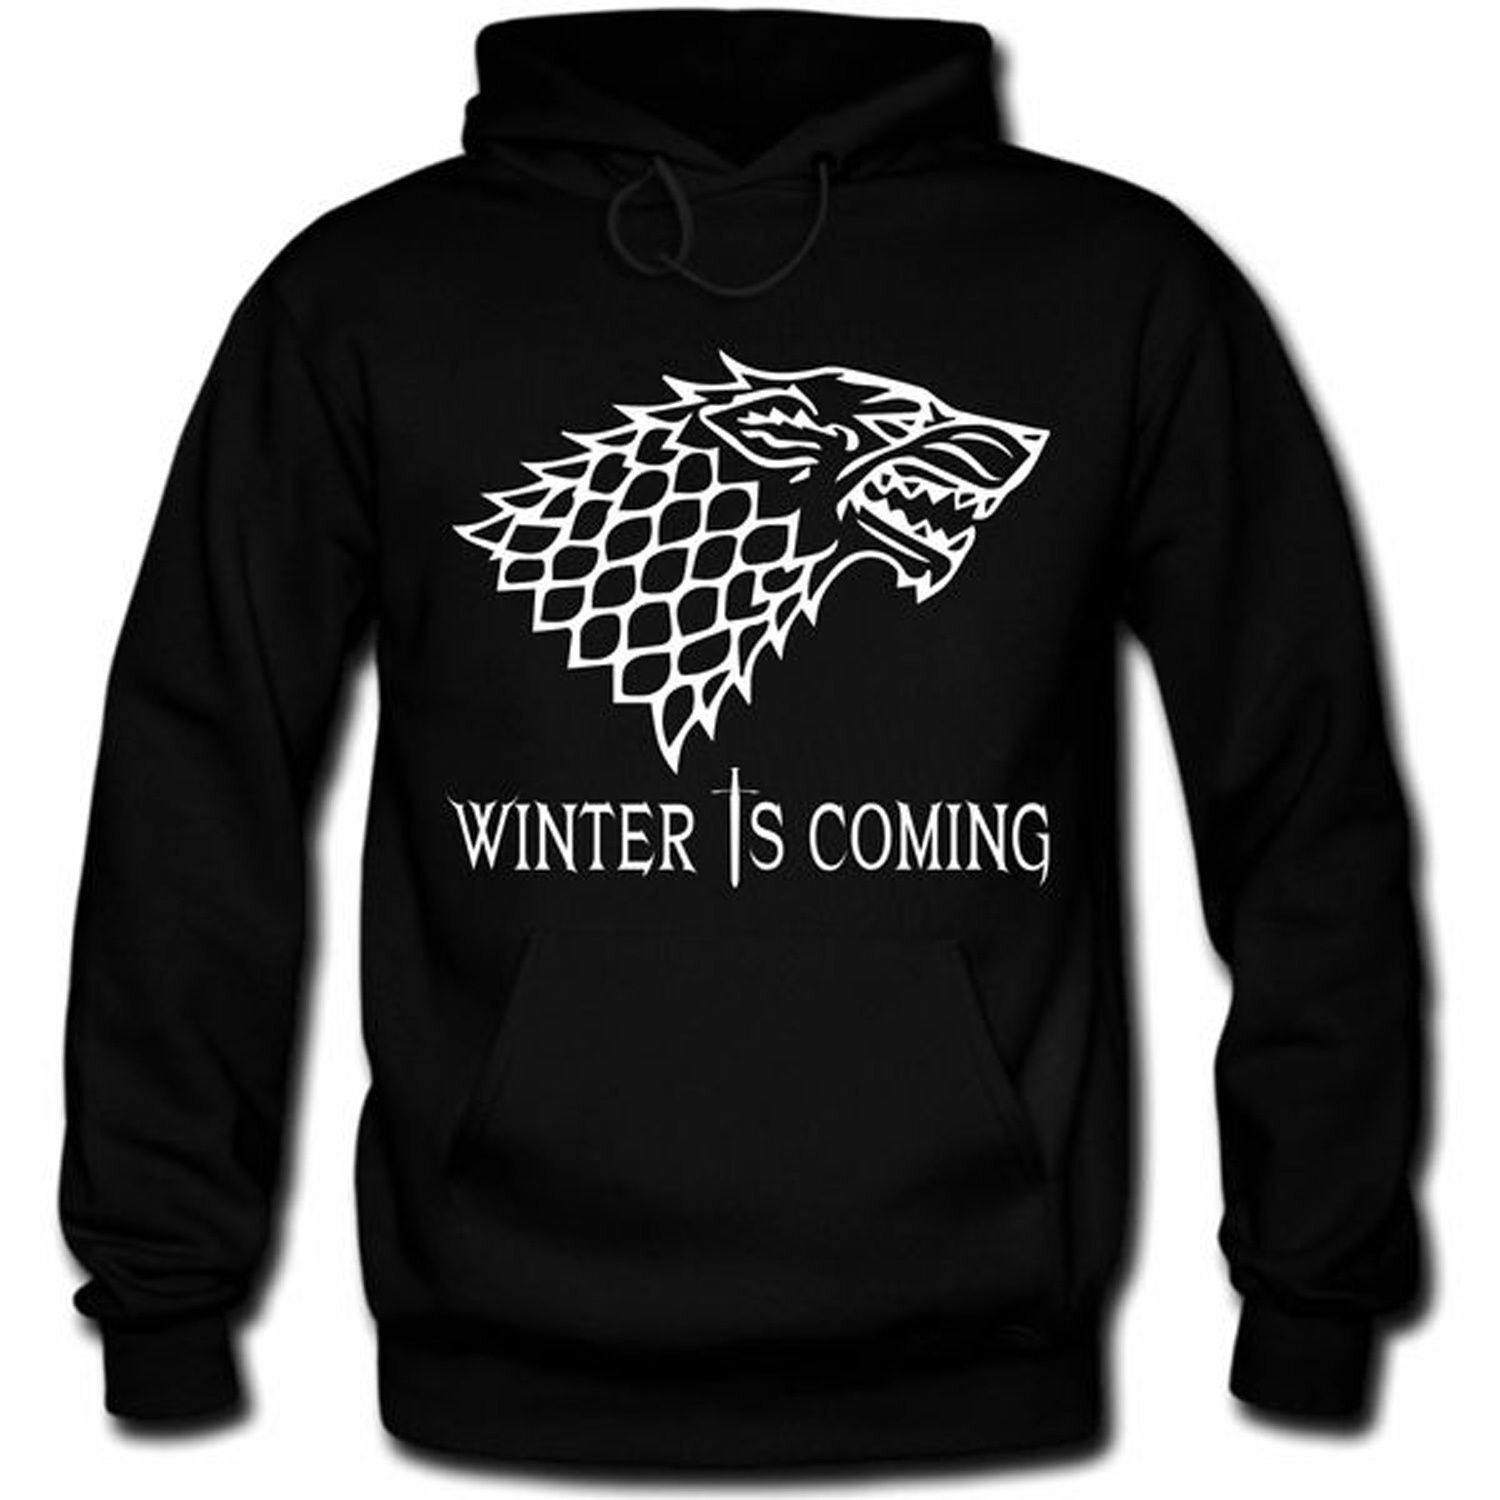 Herren Hoodie Kapuzenpulli Games Winter Is Coming Thrones S-3XL TOP QUALITÄT | Guter Markt